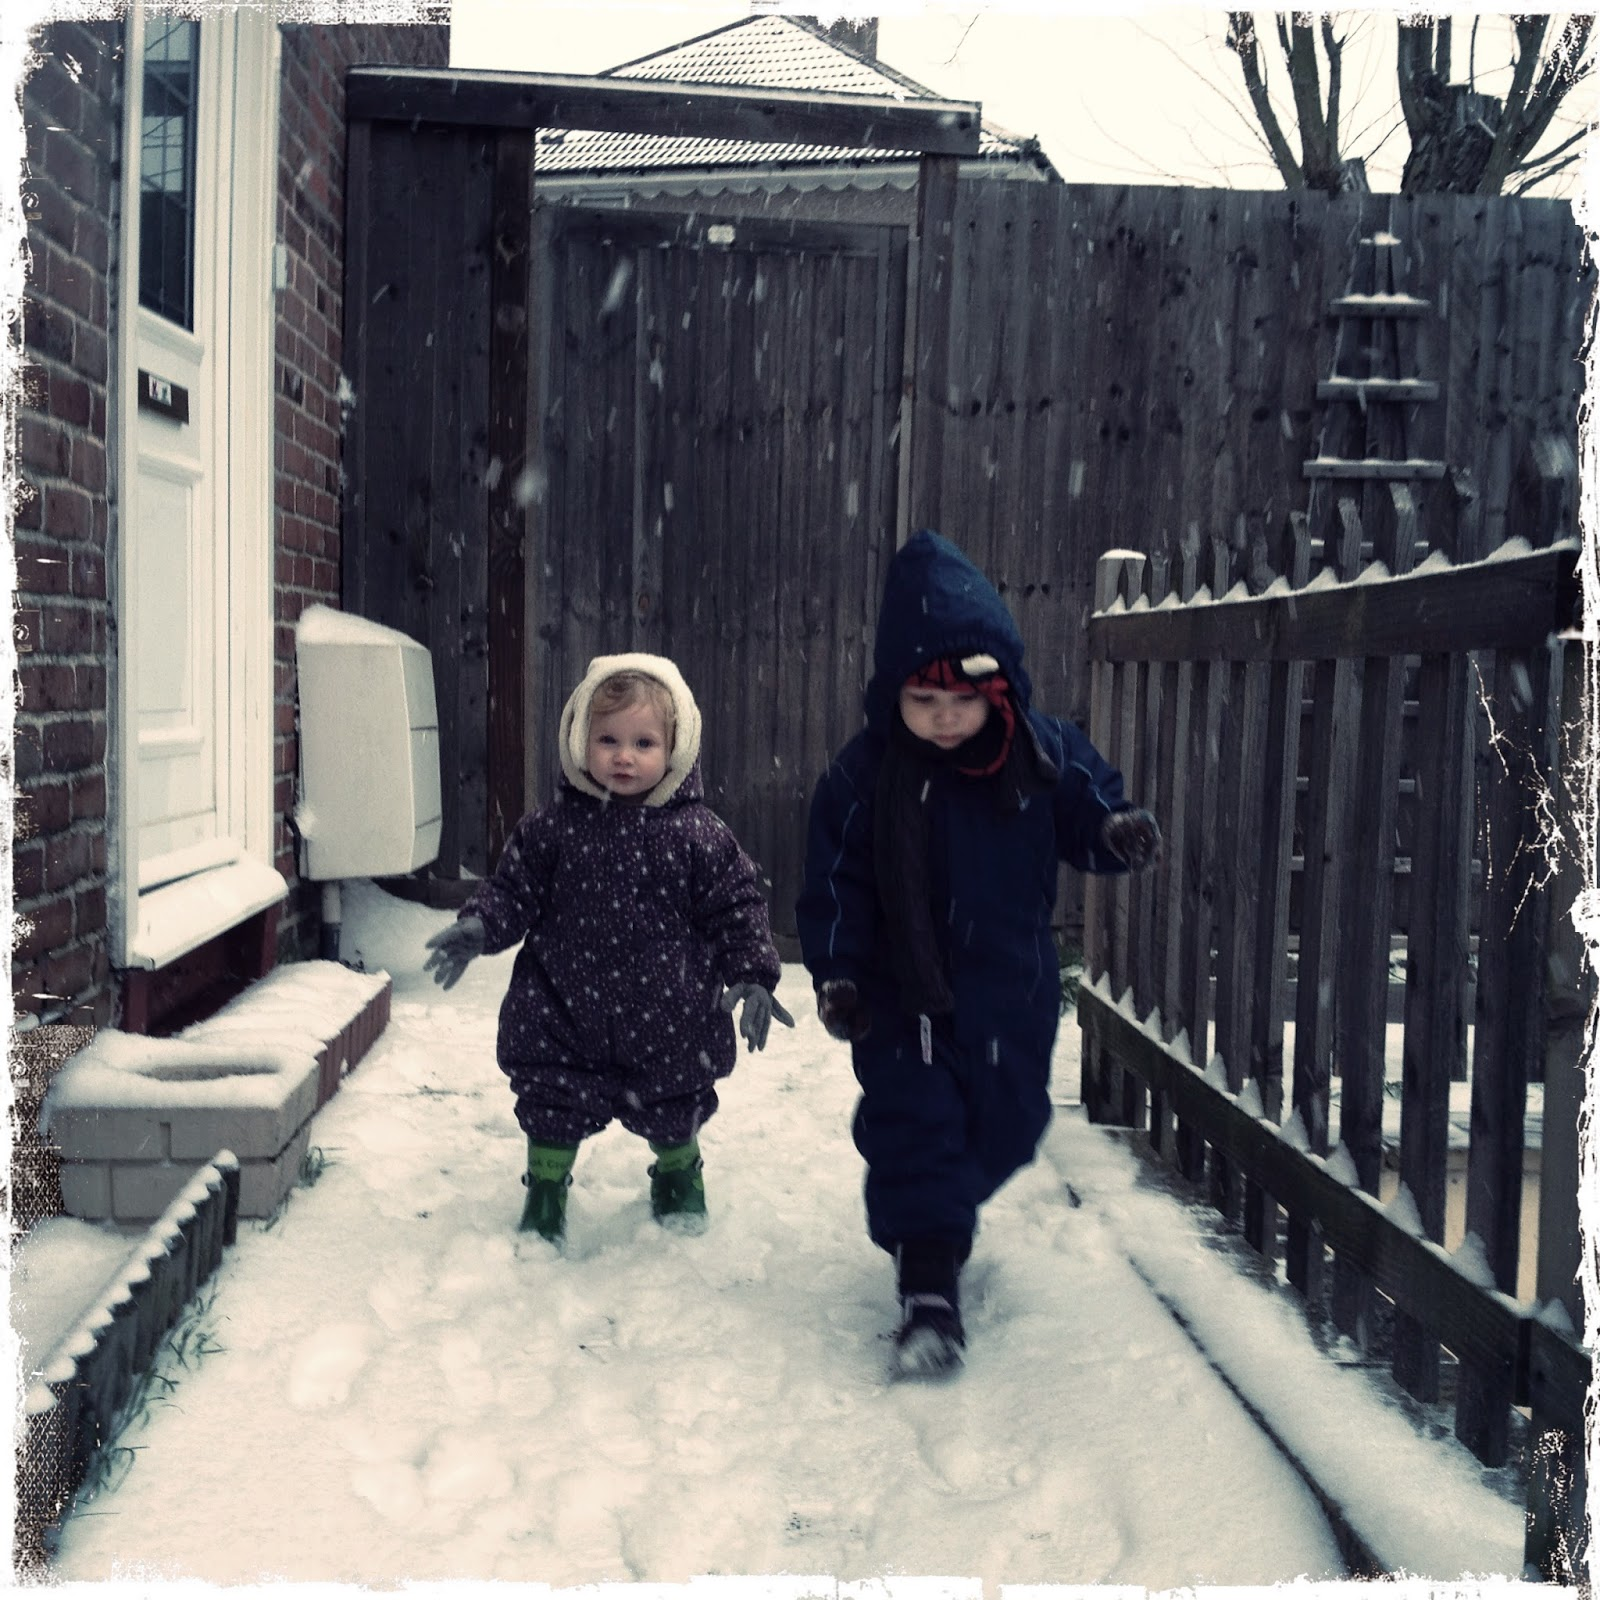 Blake Clement 3 and Maegan 1 Clement playing in the snow - Jan 2013